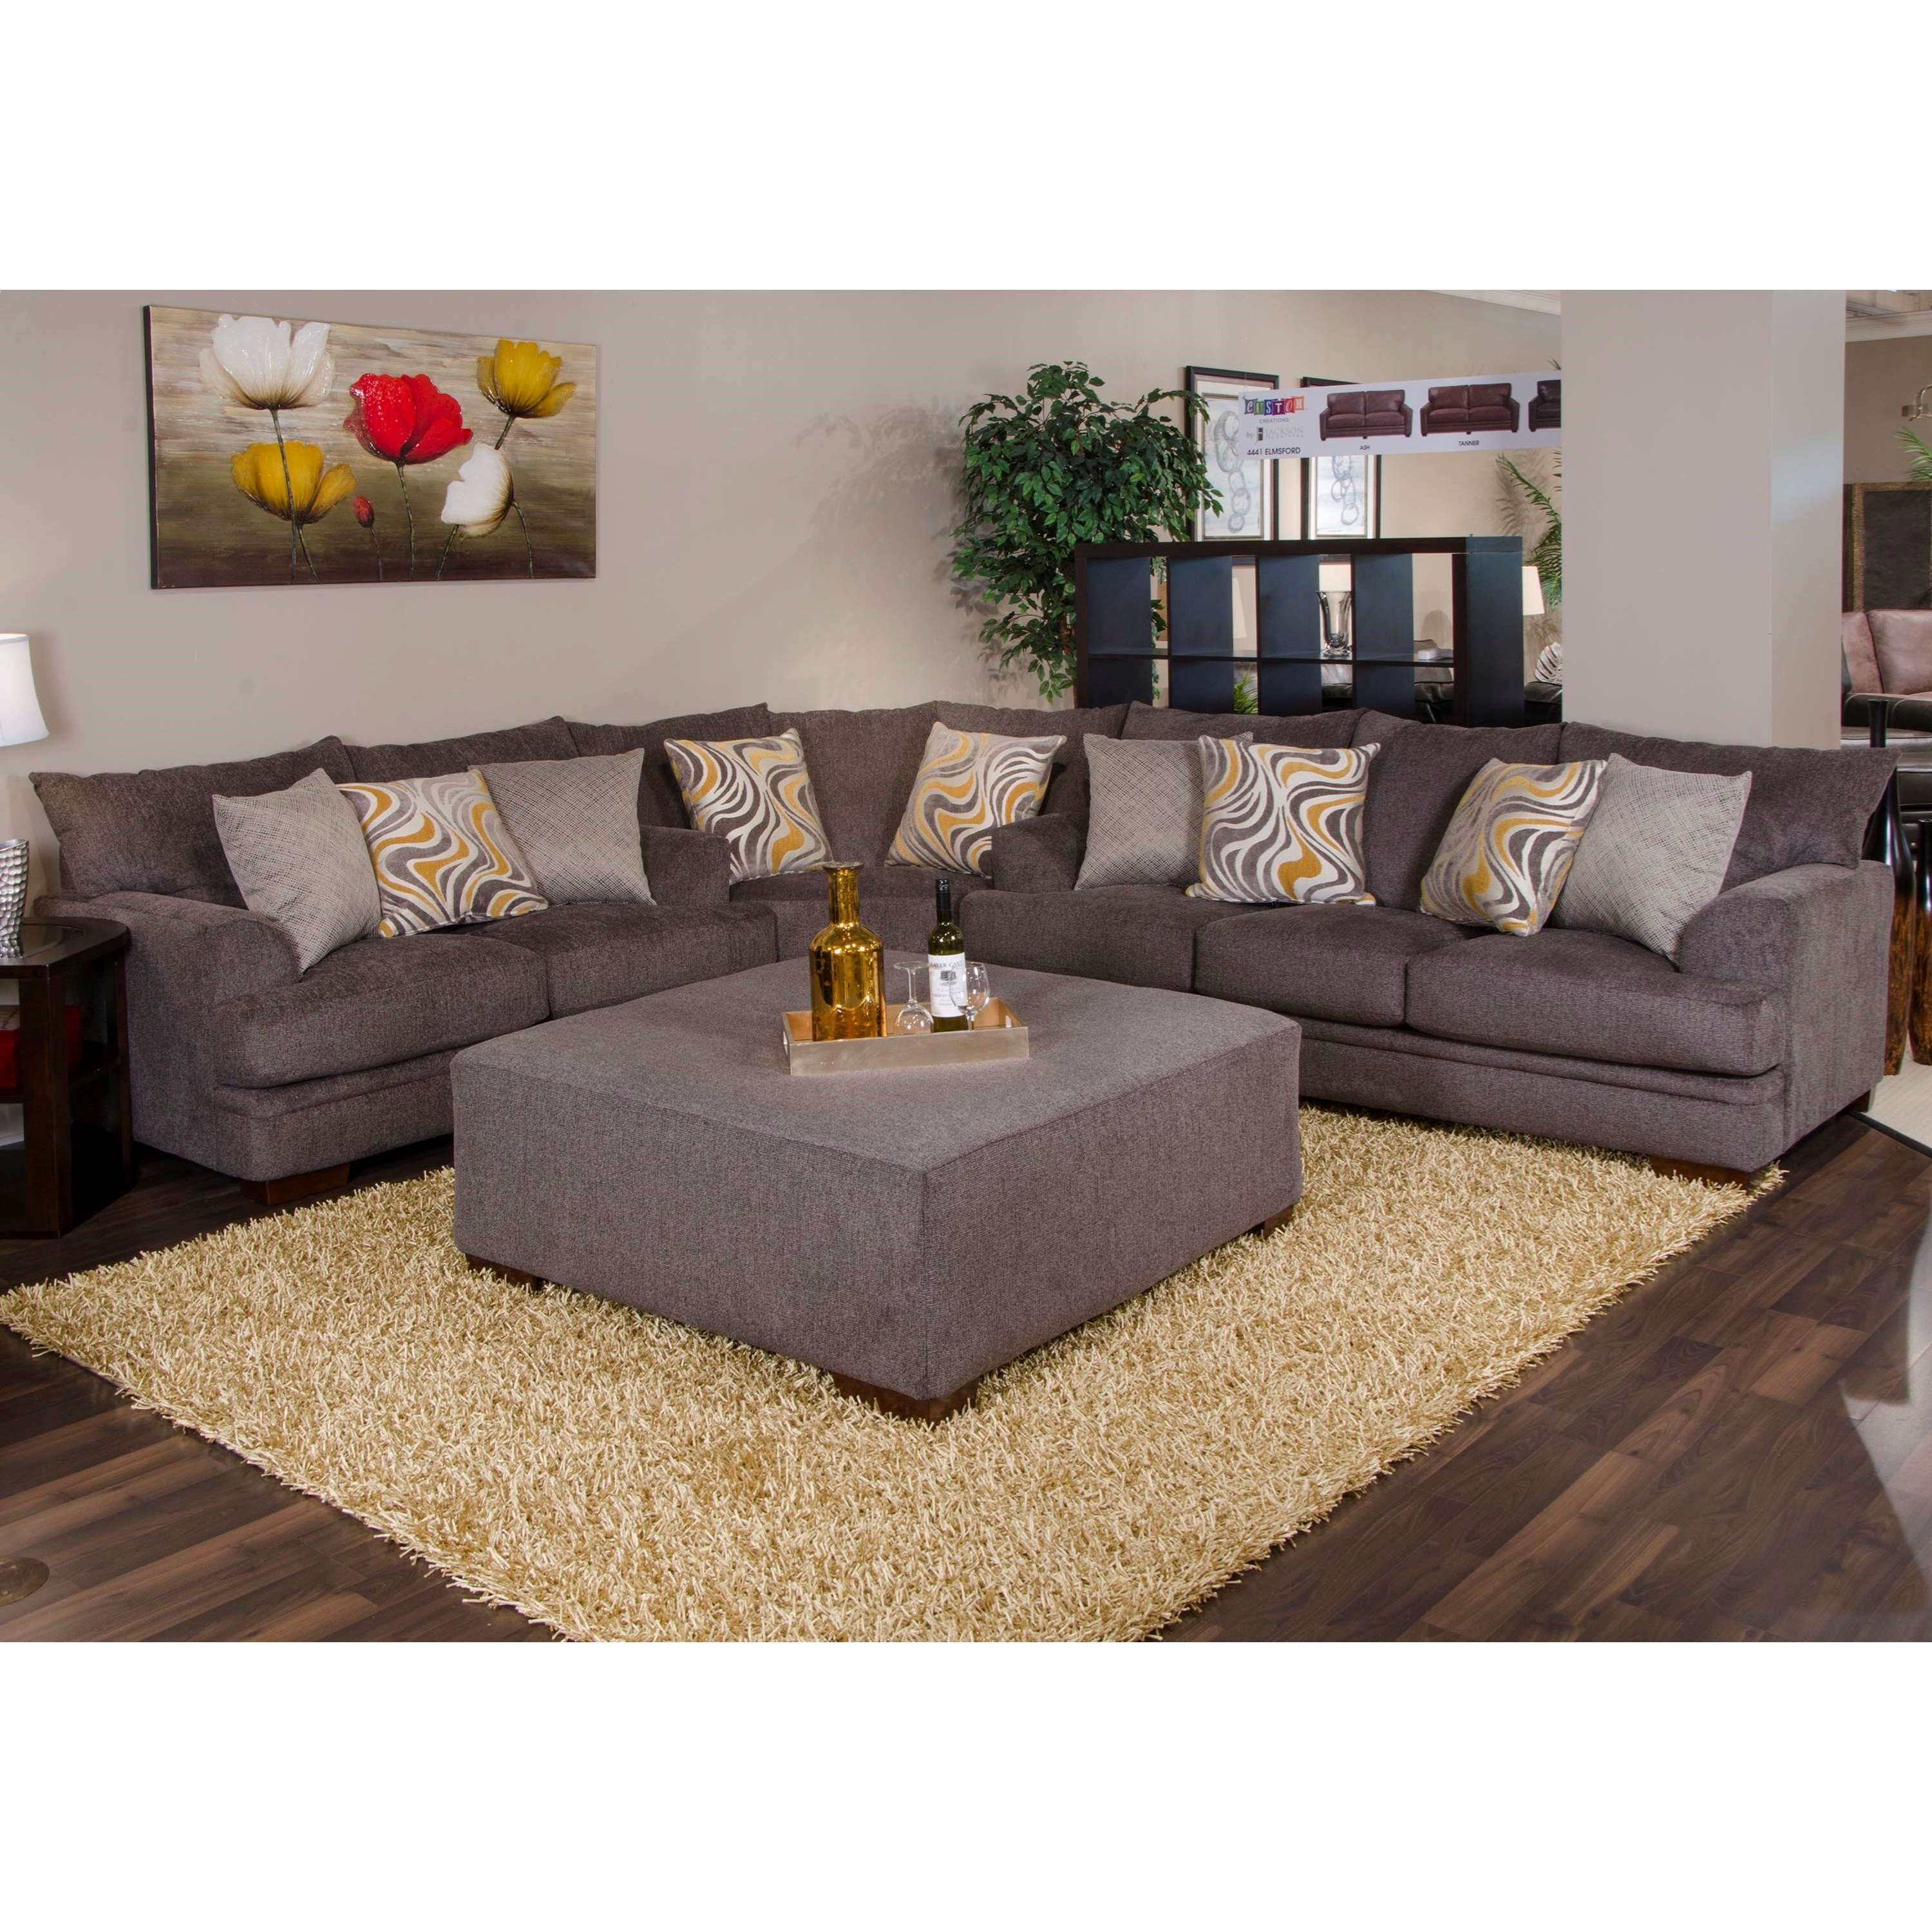 Charming Jackson Furniture Crompton Sectional Sofa With Casual Style   Item Number:  4462 02+